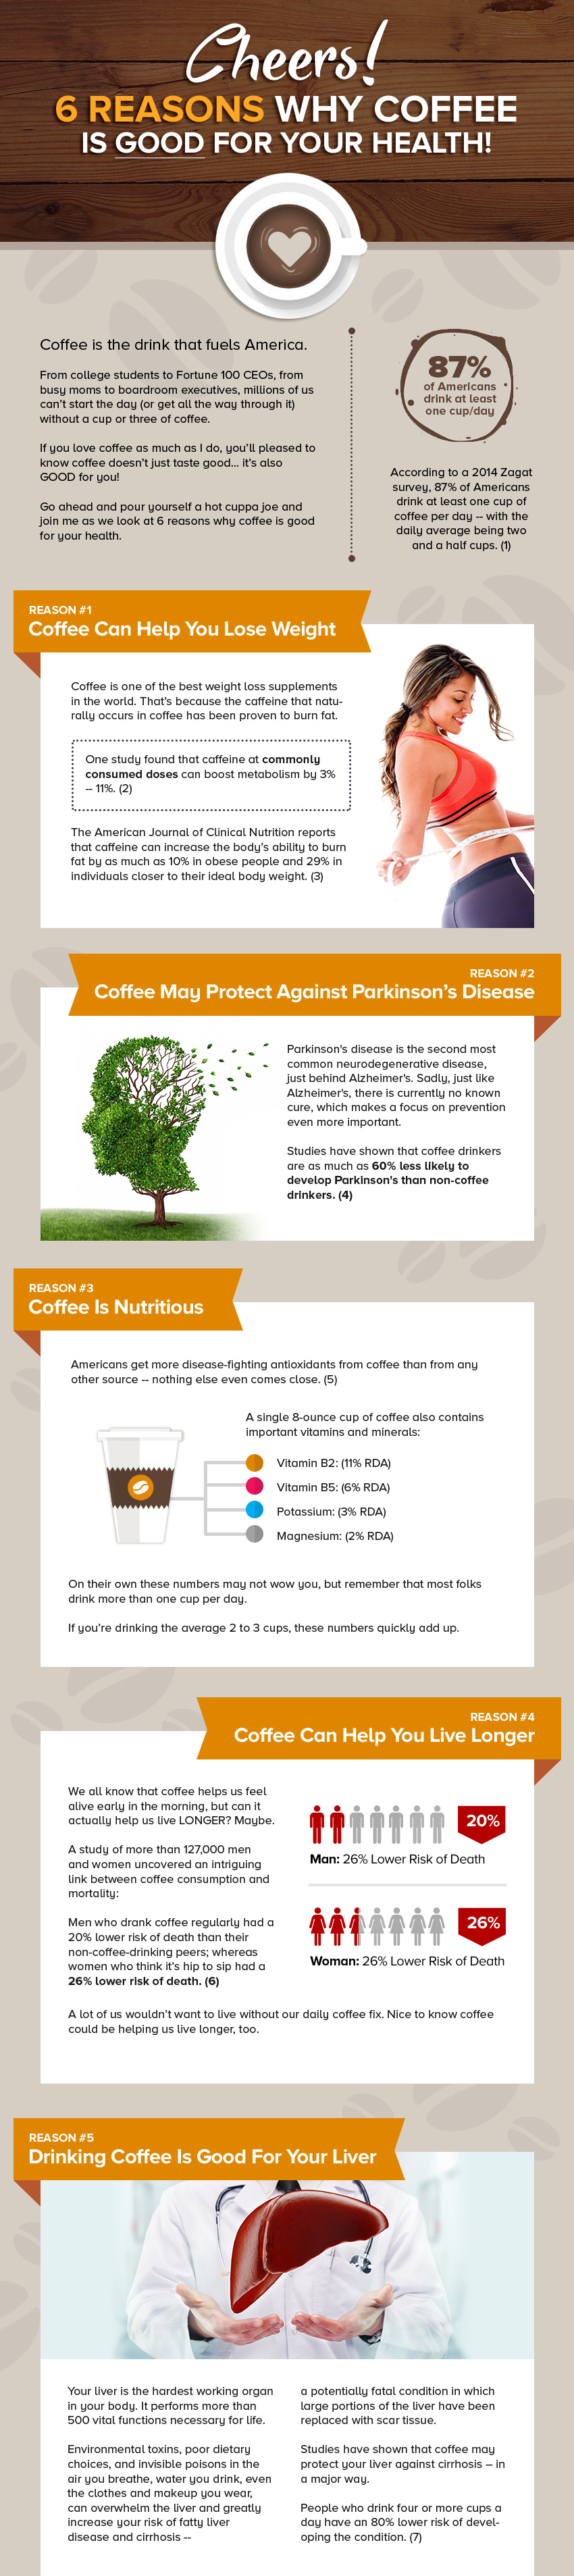 Coffee_benefits1